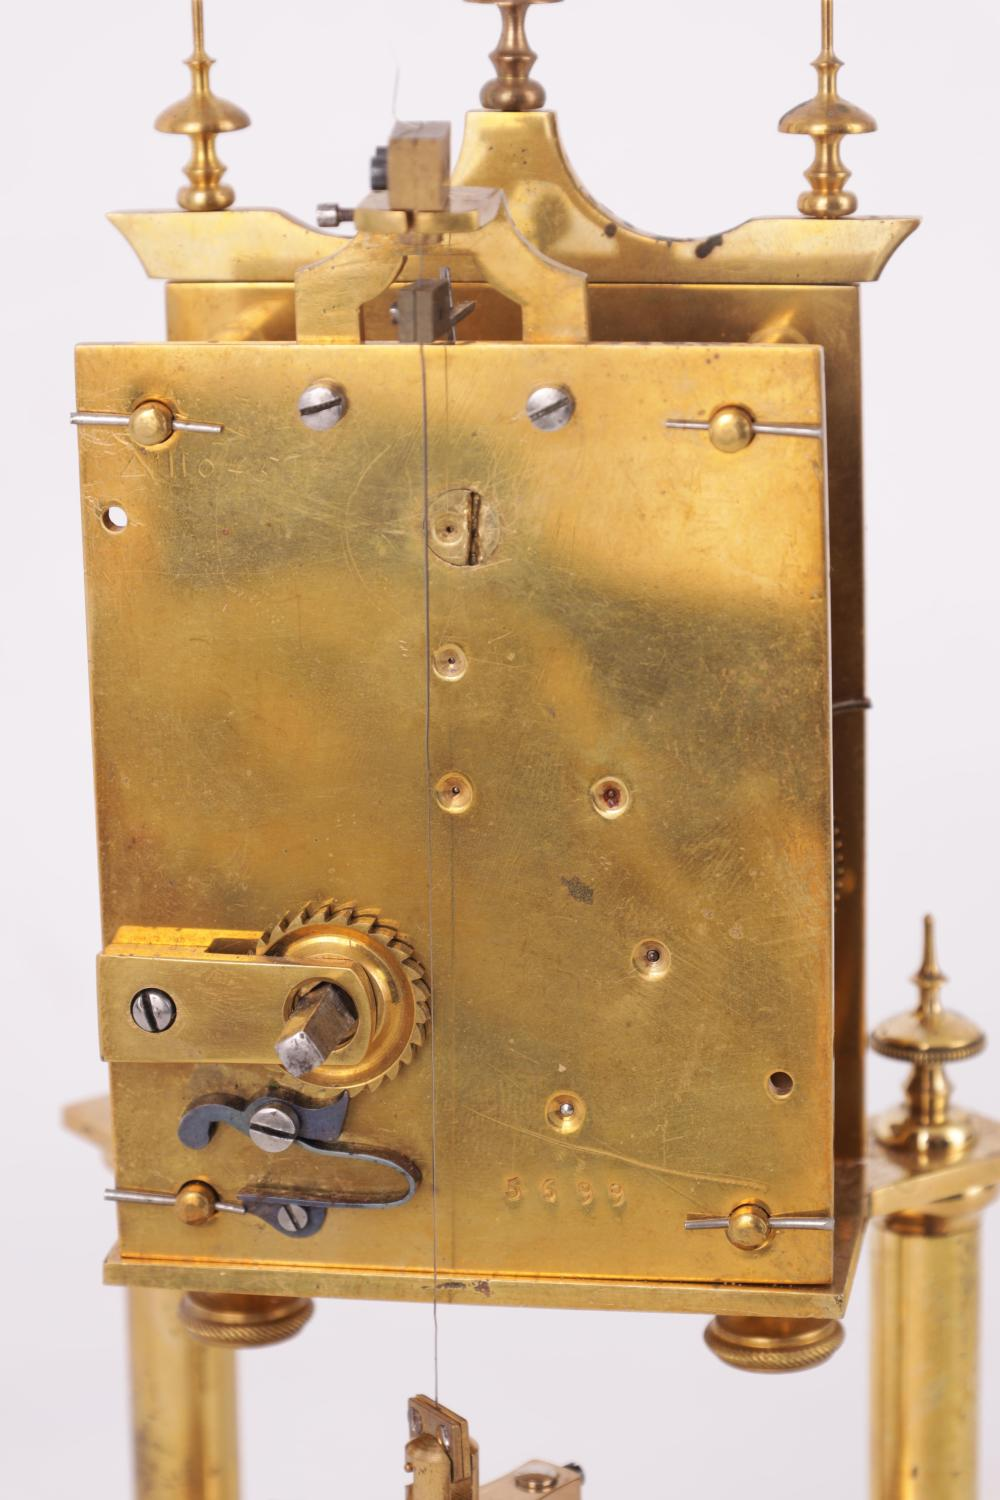 AN EARLY 400-DAY TORSION CLOCK